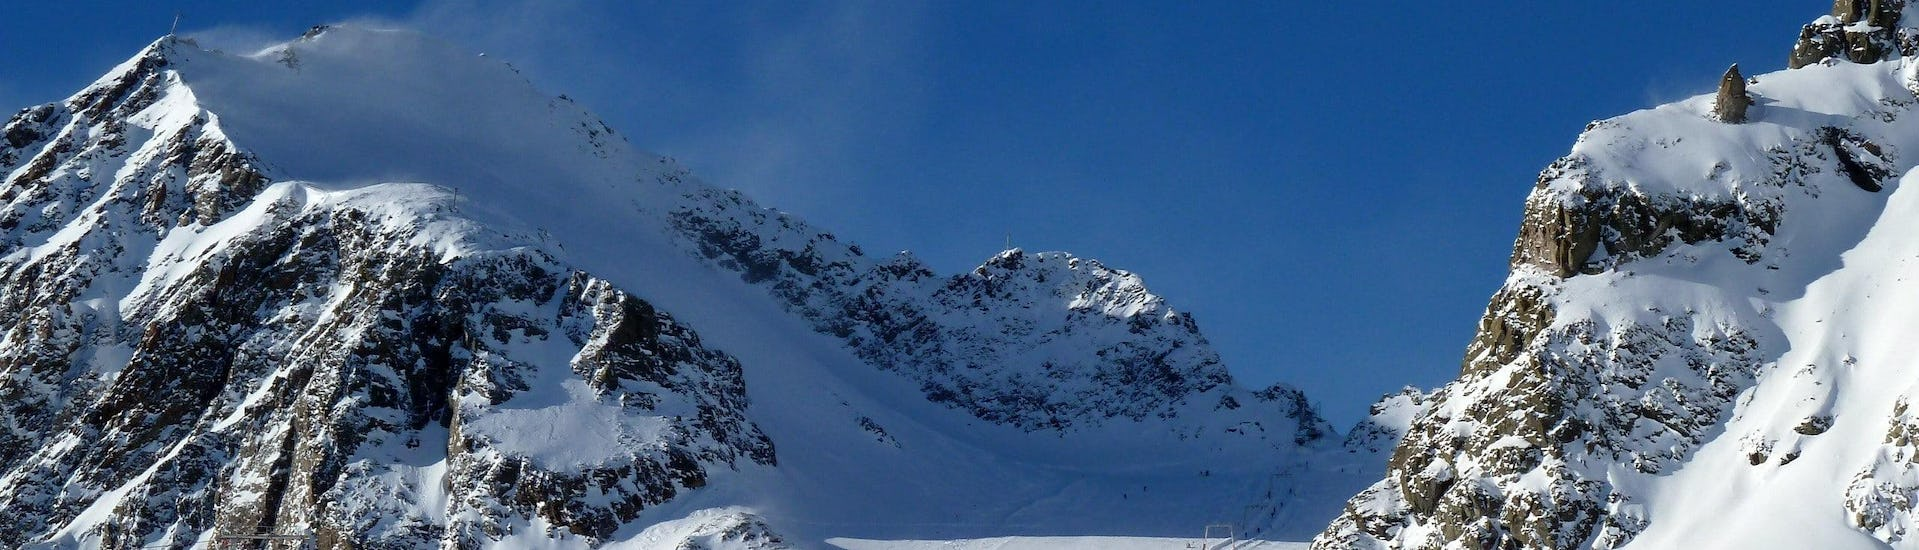 View over the sunny mountain landscape while learning to ski with the ski schools on the Pitztaler Gletscher.